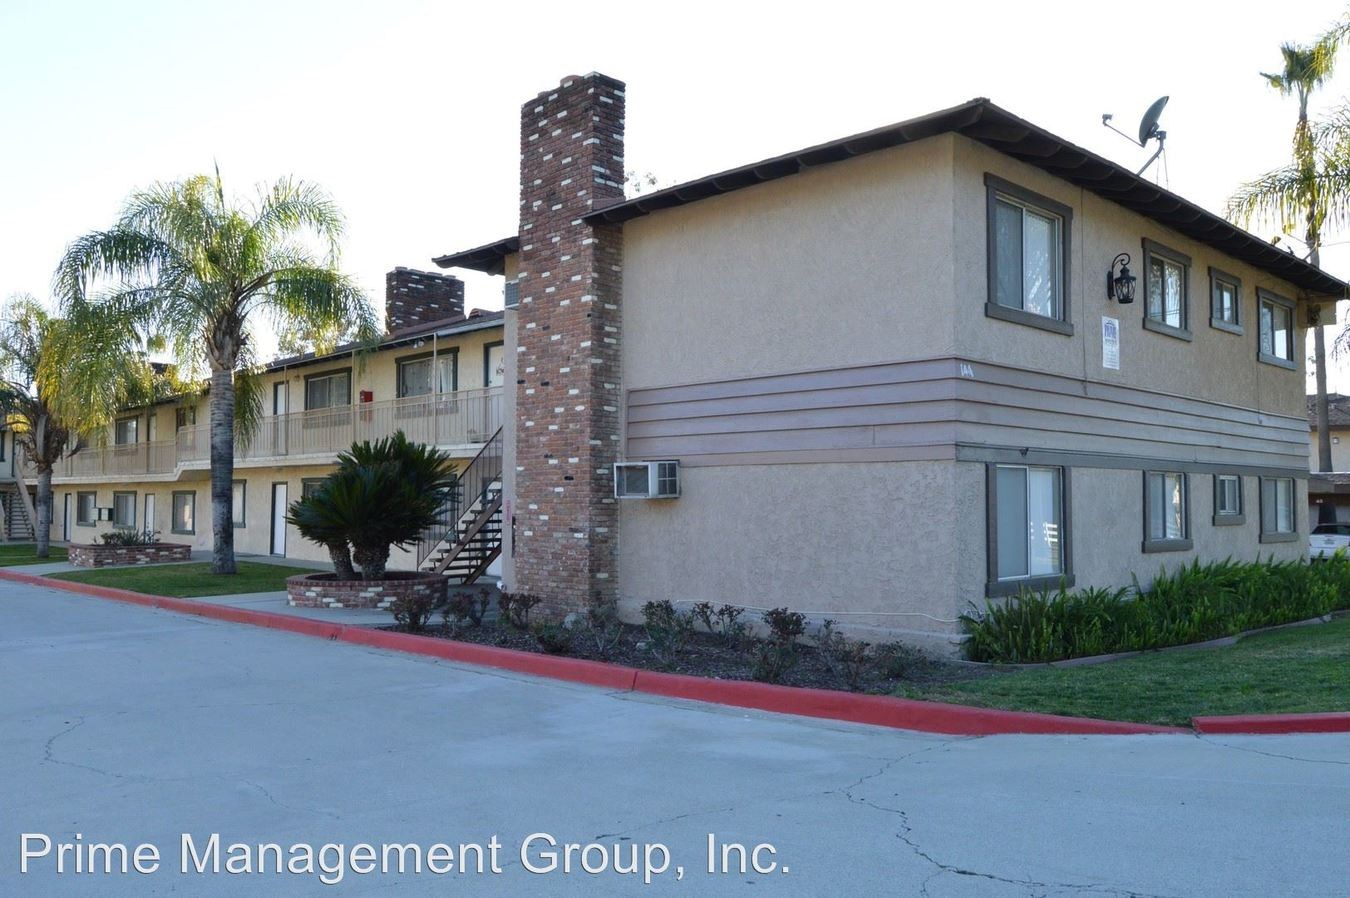 2 Bedrooms 1 Bathroom Apartment for rent at 144-168 E. Baseline Rd. in San Dimas, CA